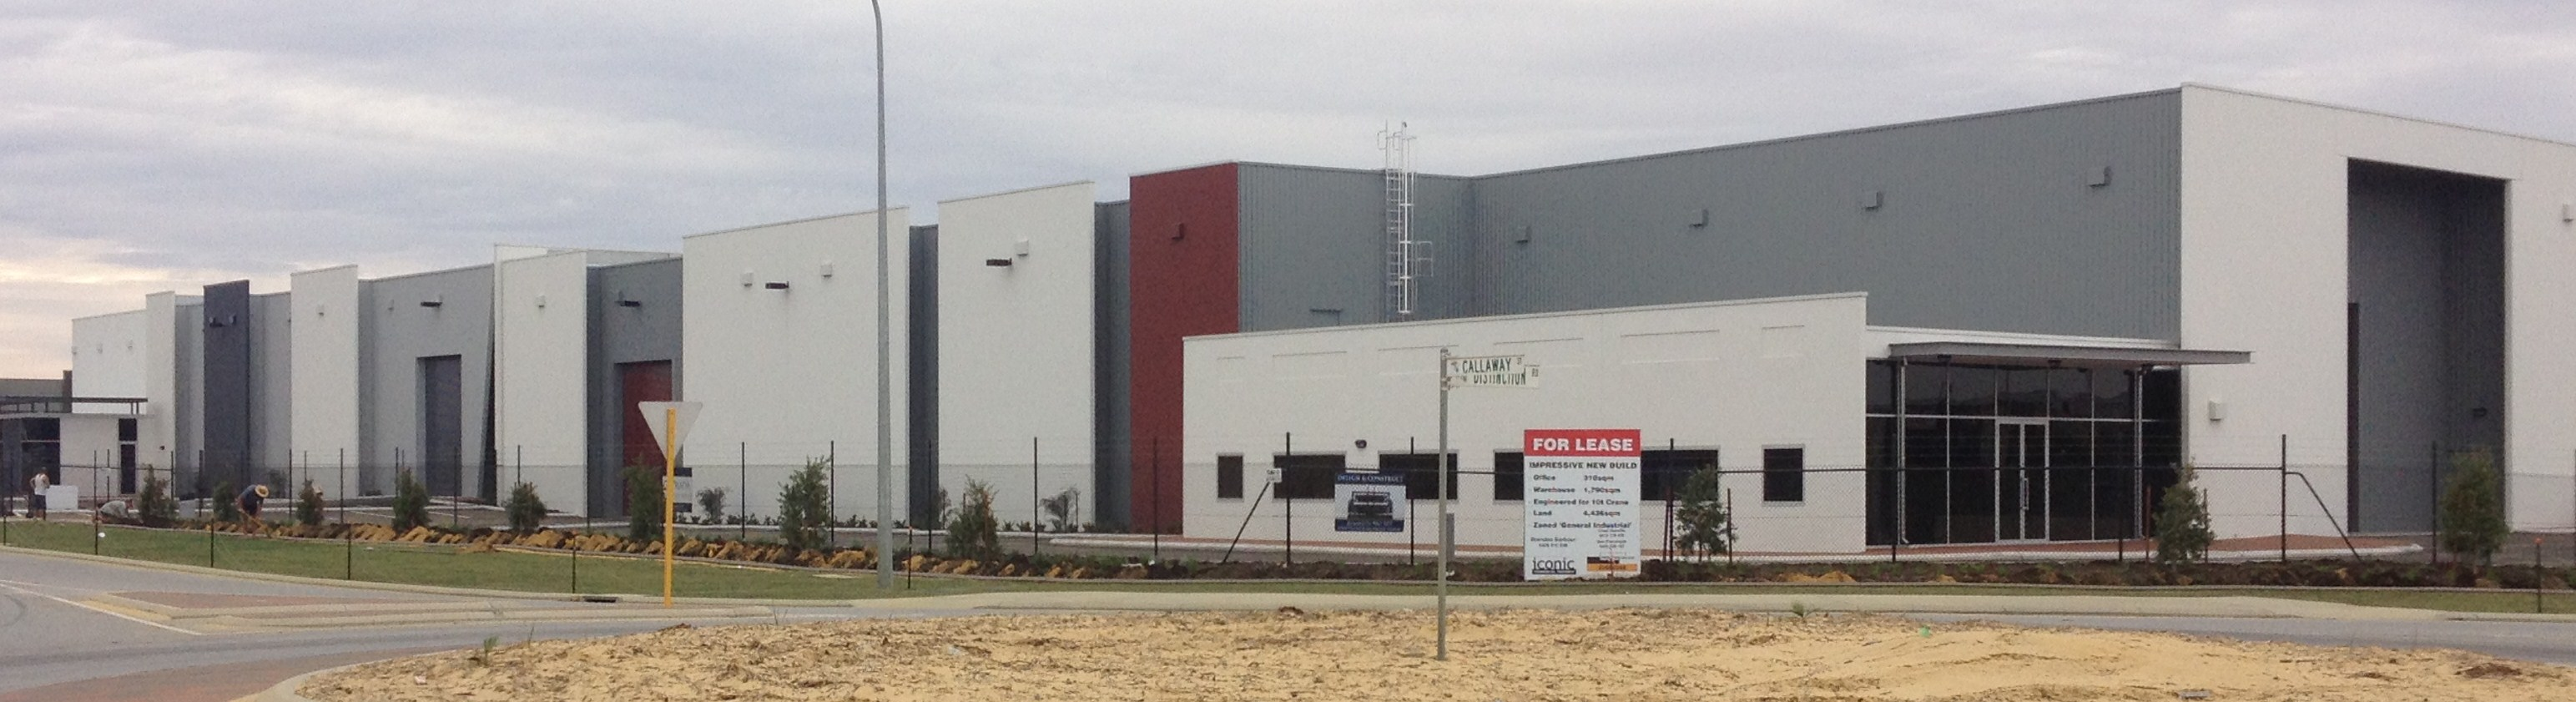 Exterior of large commercial multi-unit warehouse complex, finished in white, grey and red